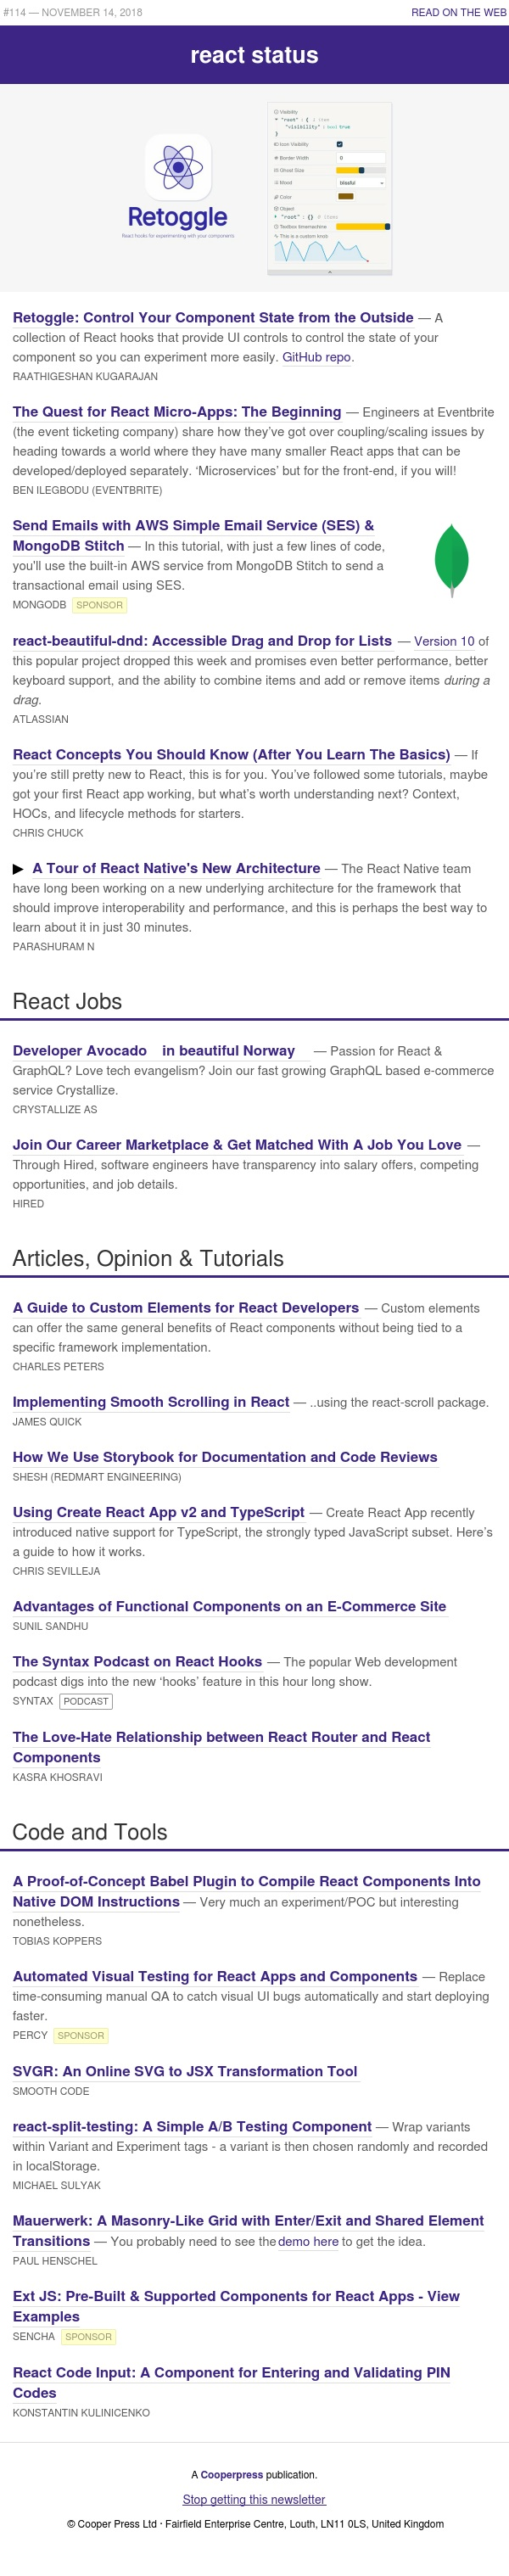 React concepts you should know (after learning the basics)